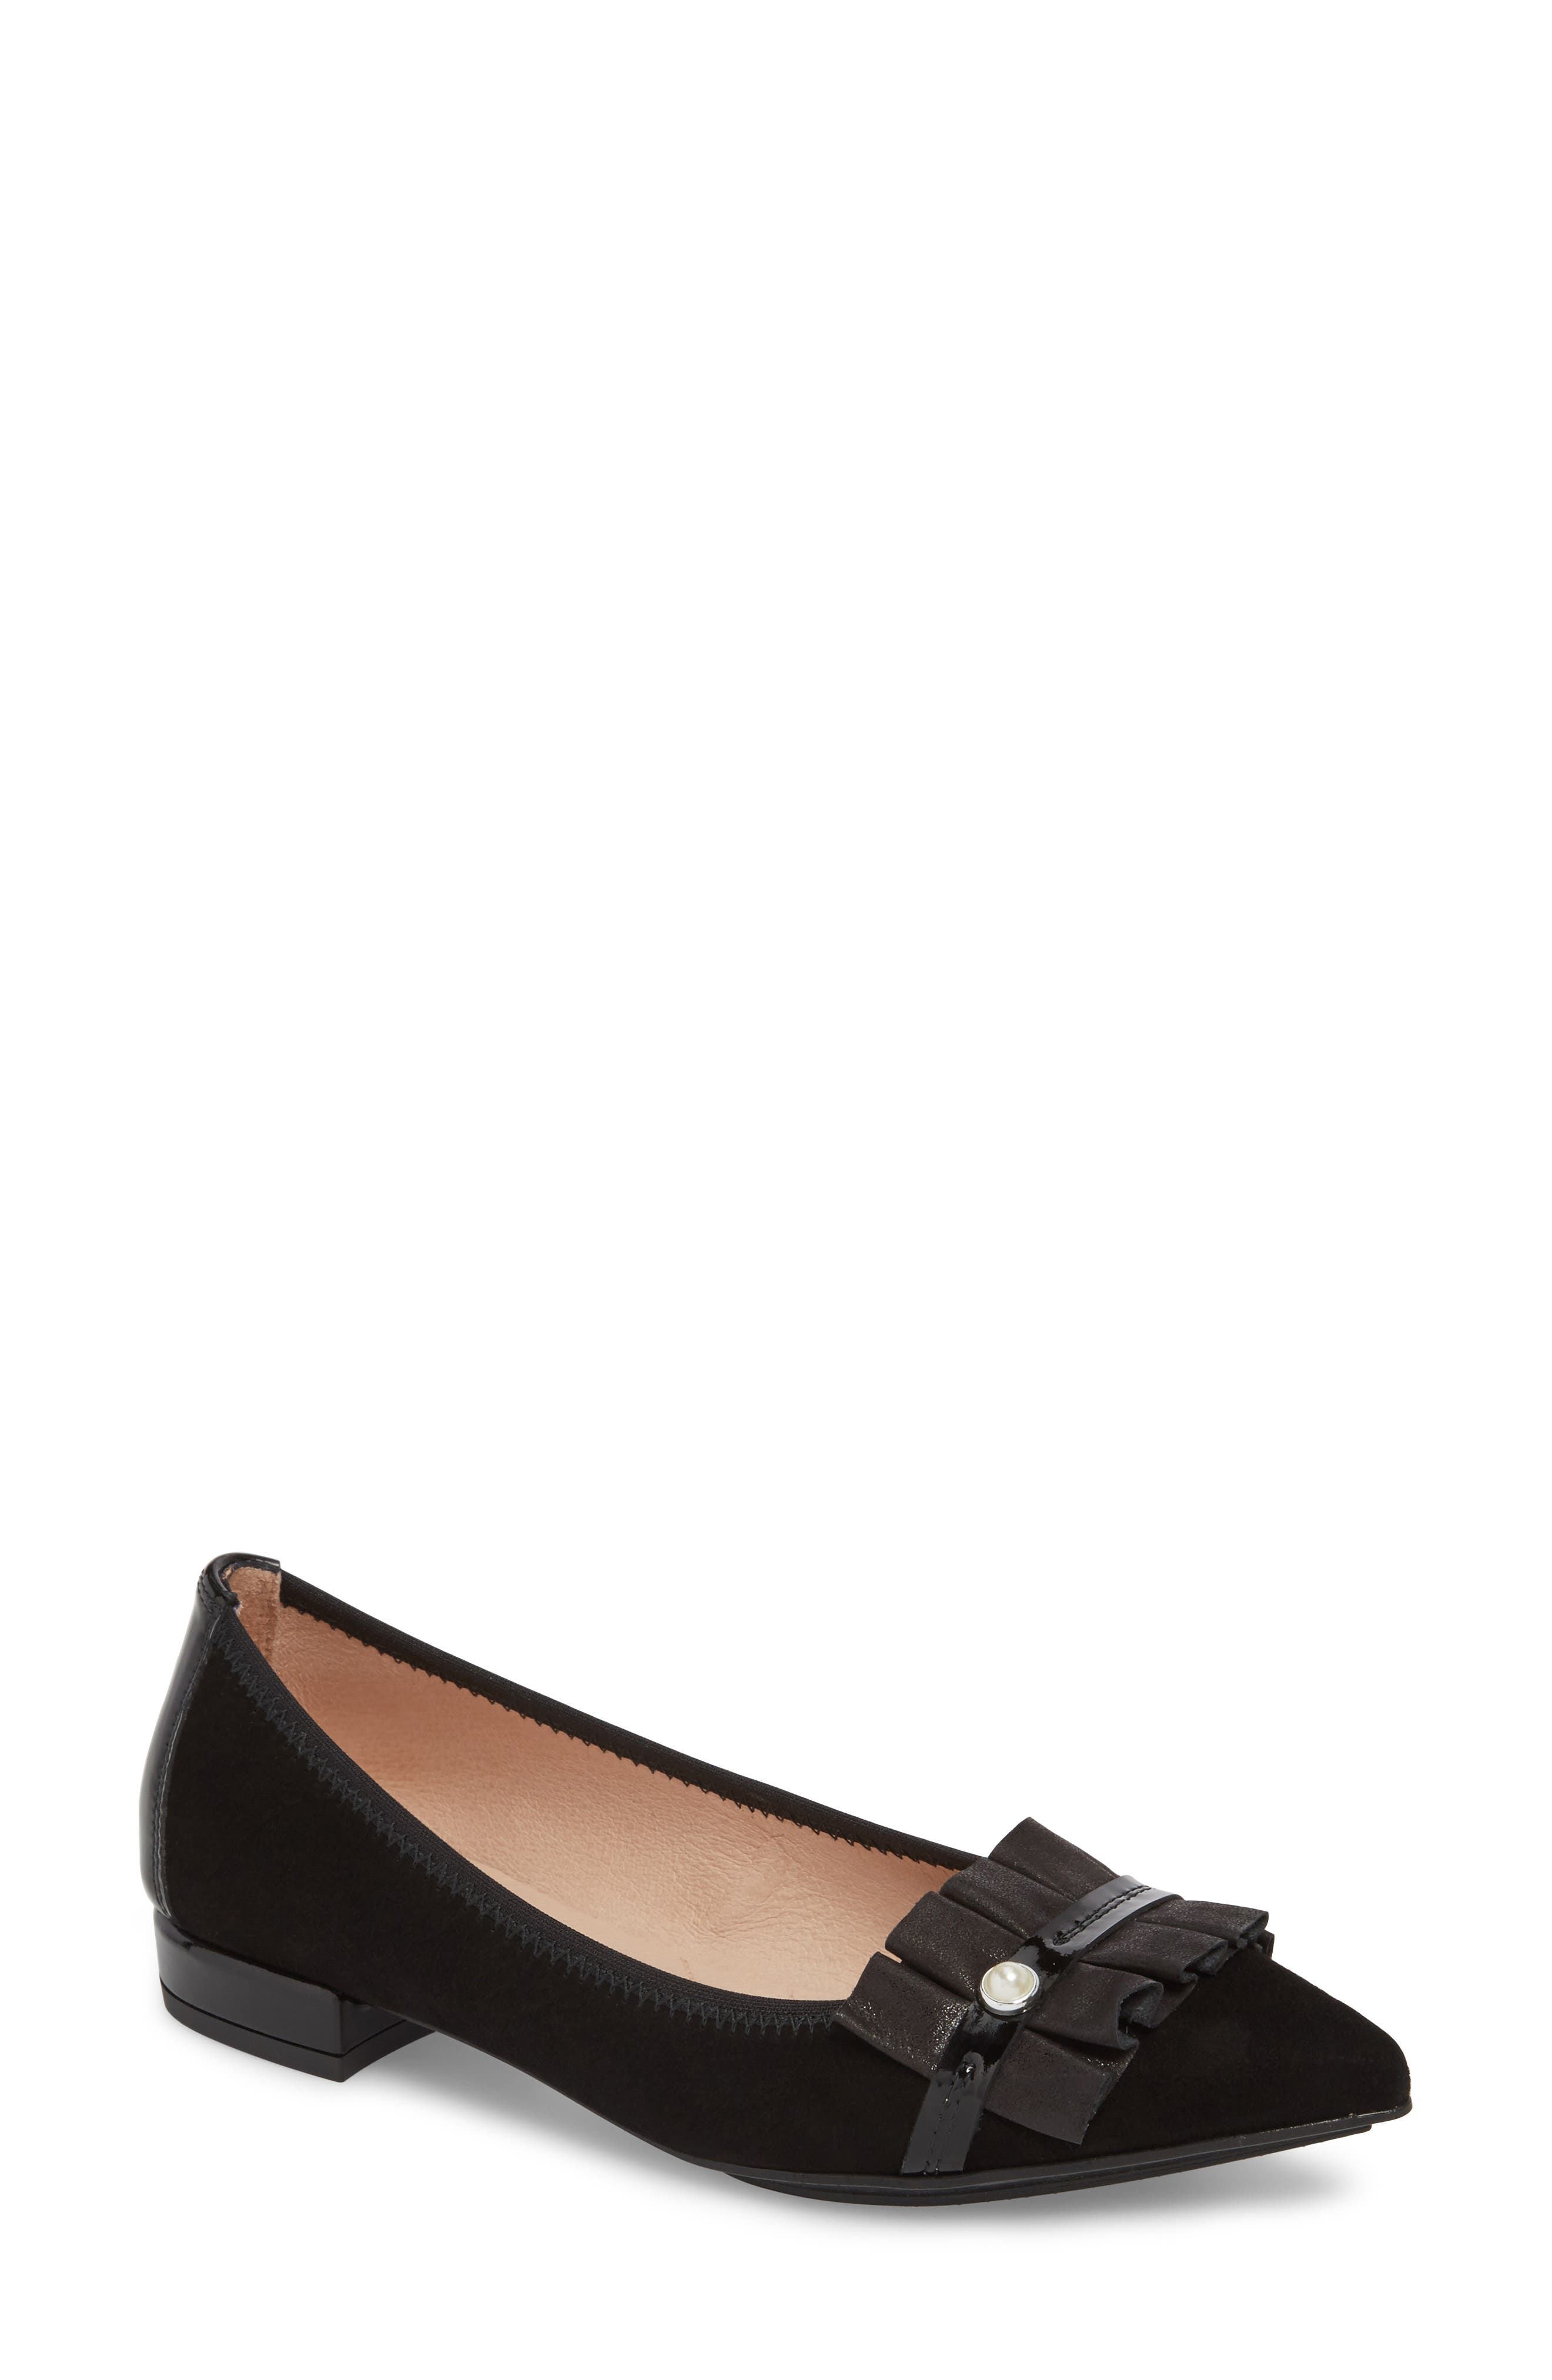 Yvette Flat,                         Main,                         color, Ante Black Leather